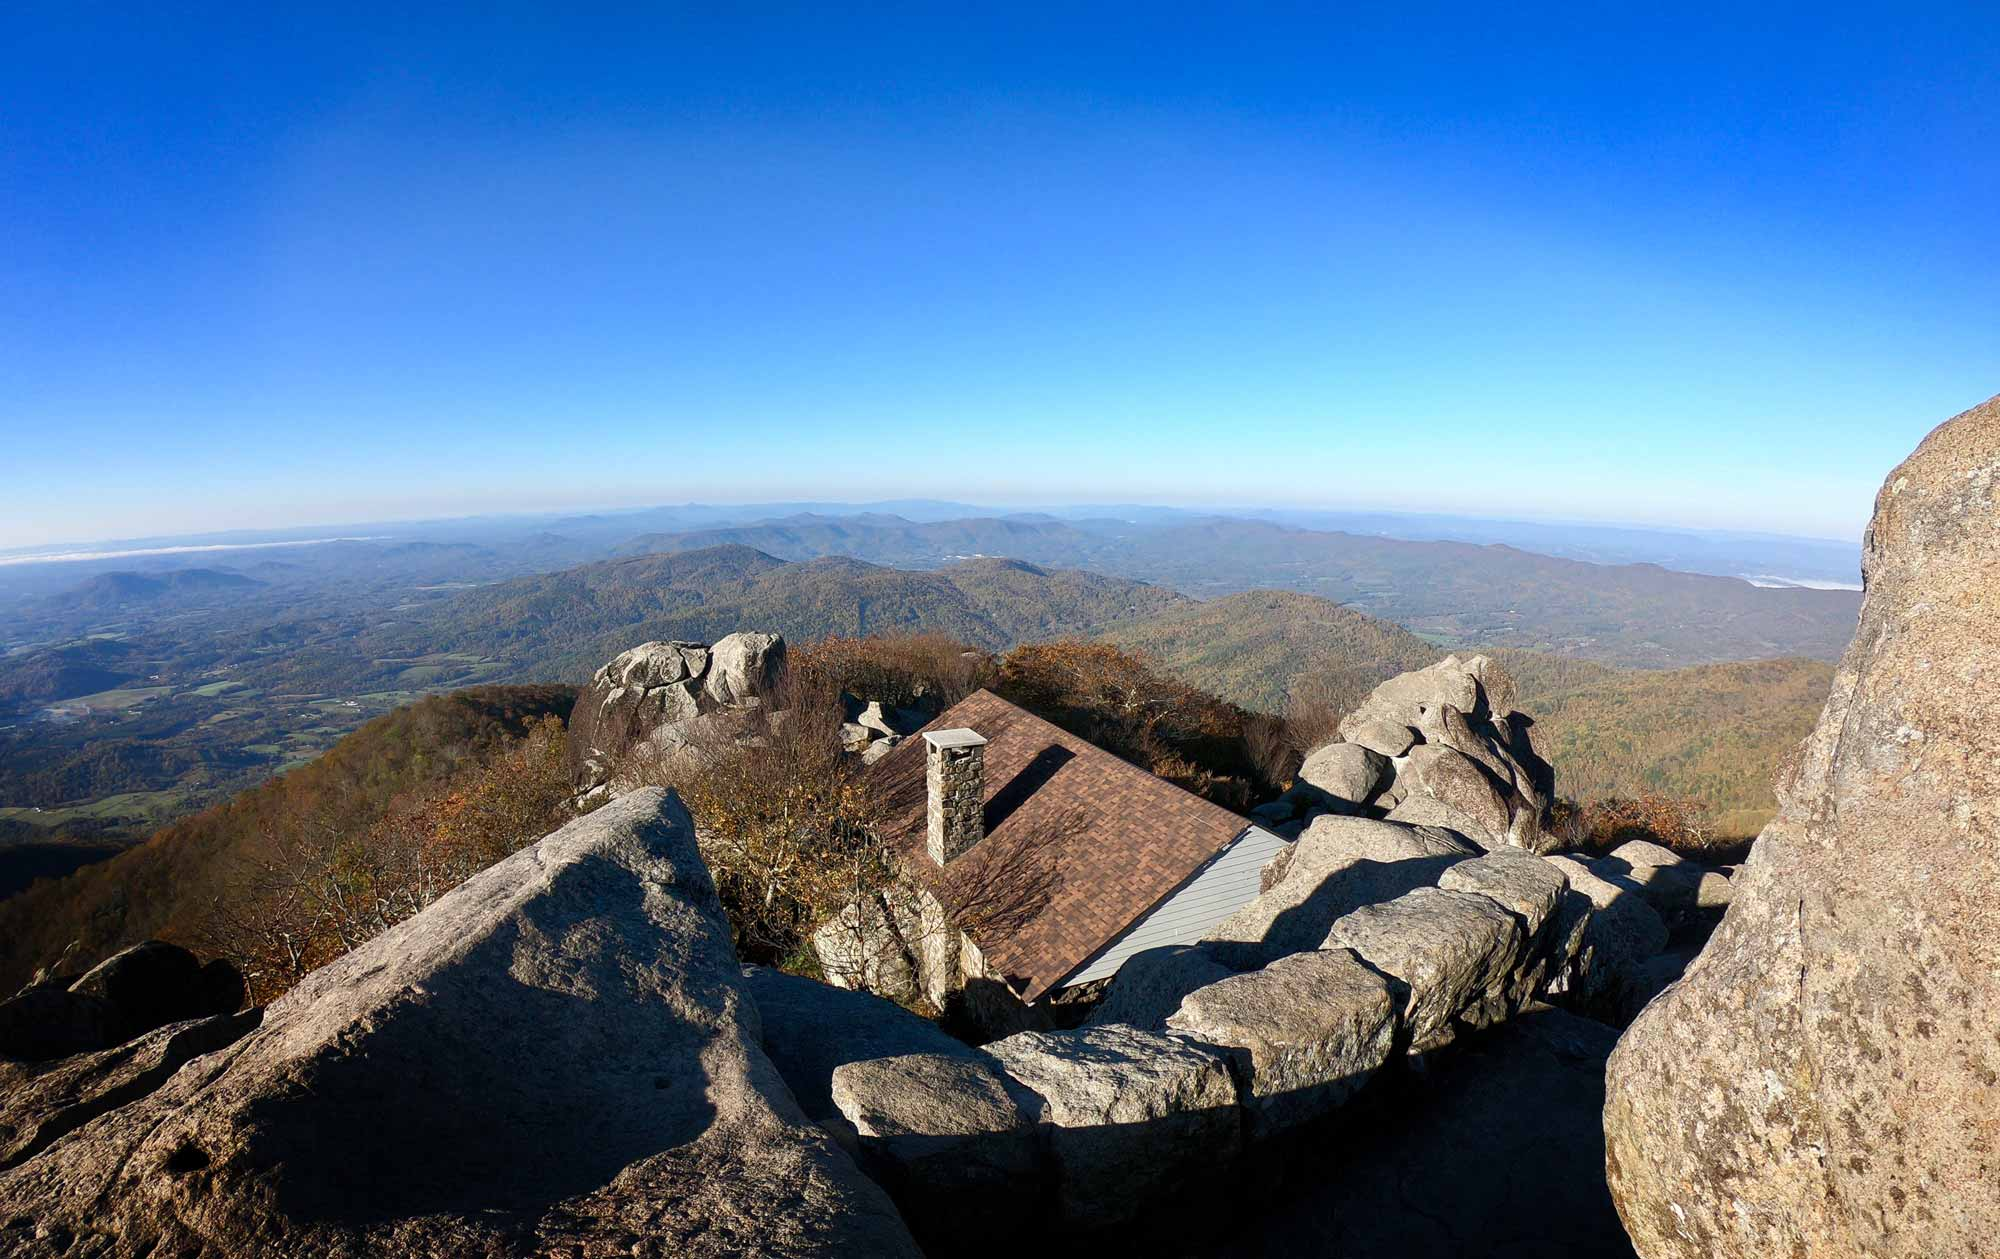 Summit view on Sharp Top Trail overlooking stone shelter near Peaks of Otter on Blue Ridge Parkway, Virginia